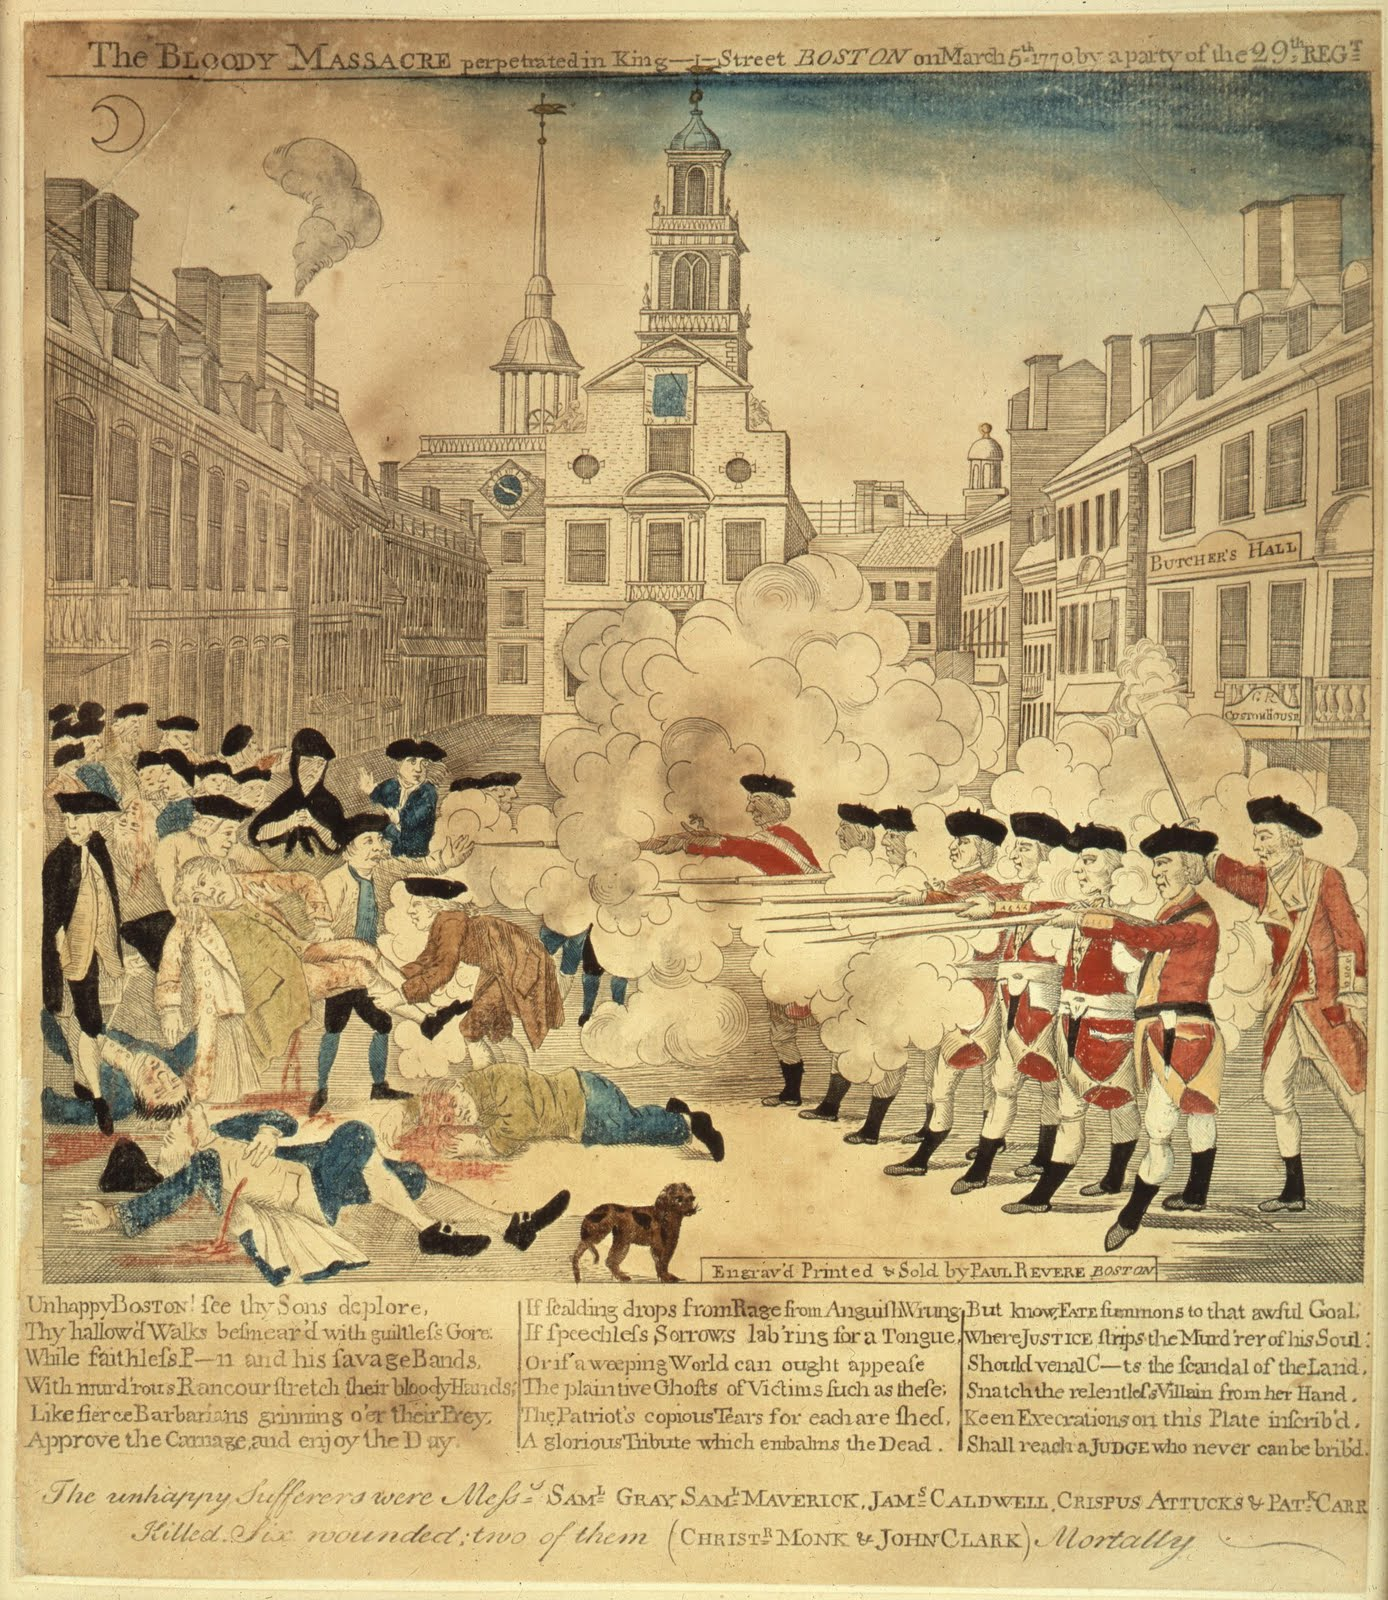 the importance of the boston massacre as the first battle of the revolutionary war